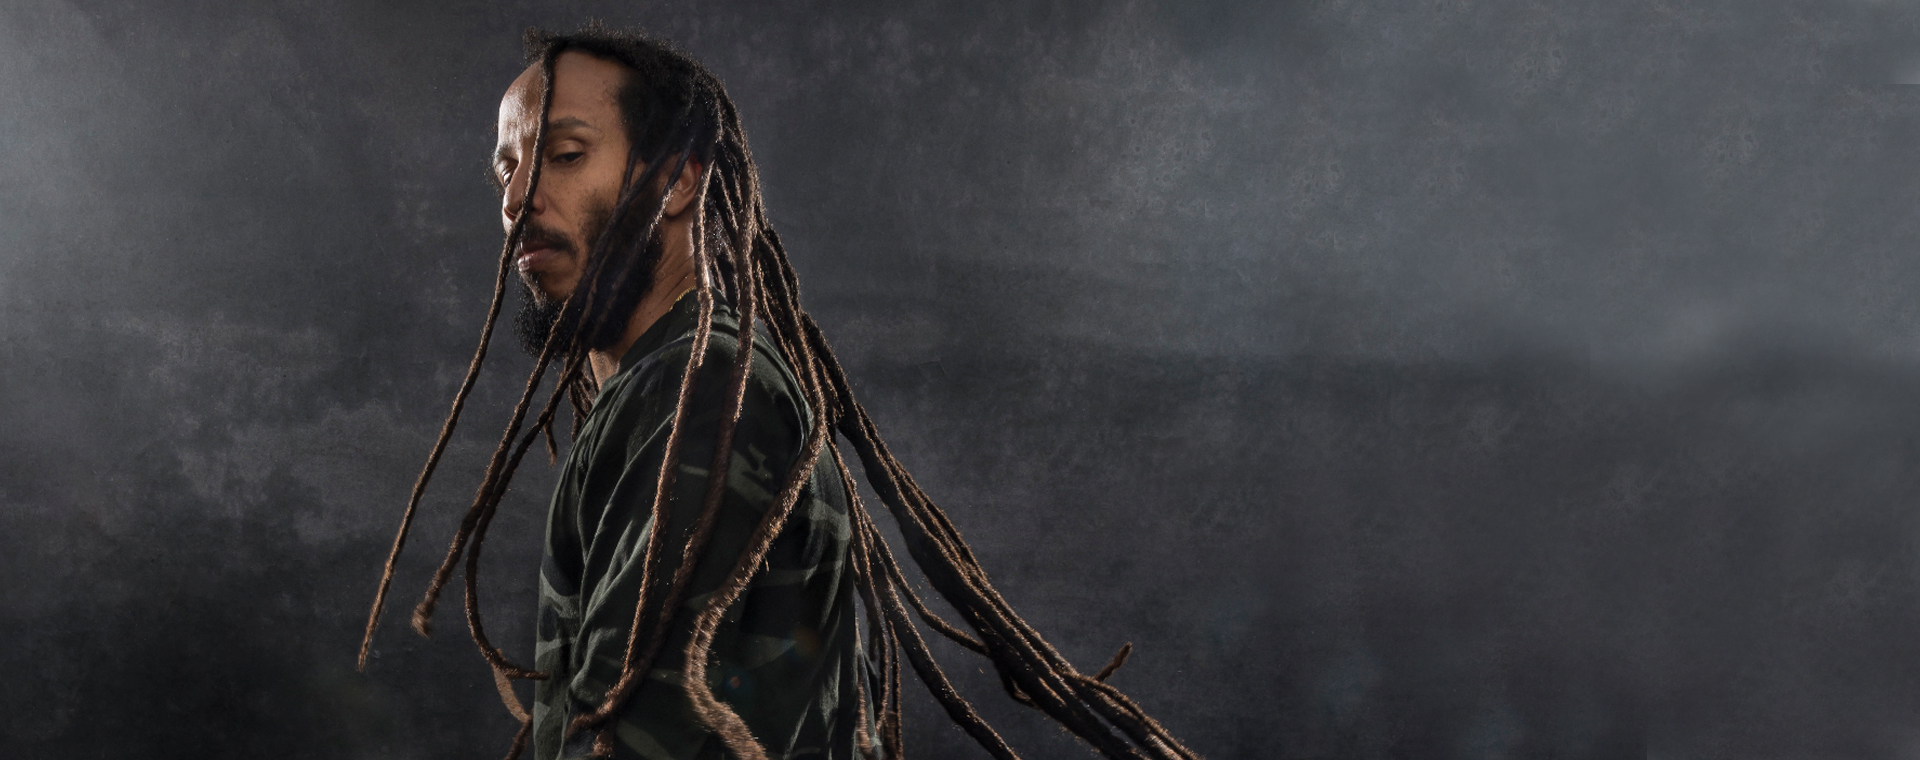 LATEST ISSUE <br><b>Ziggy Marley</b></br>